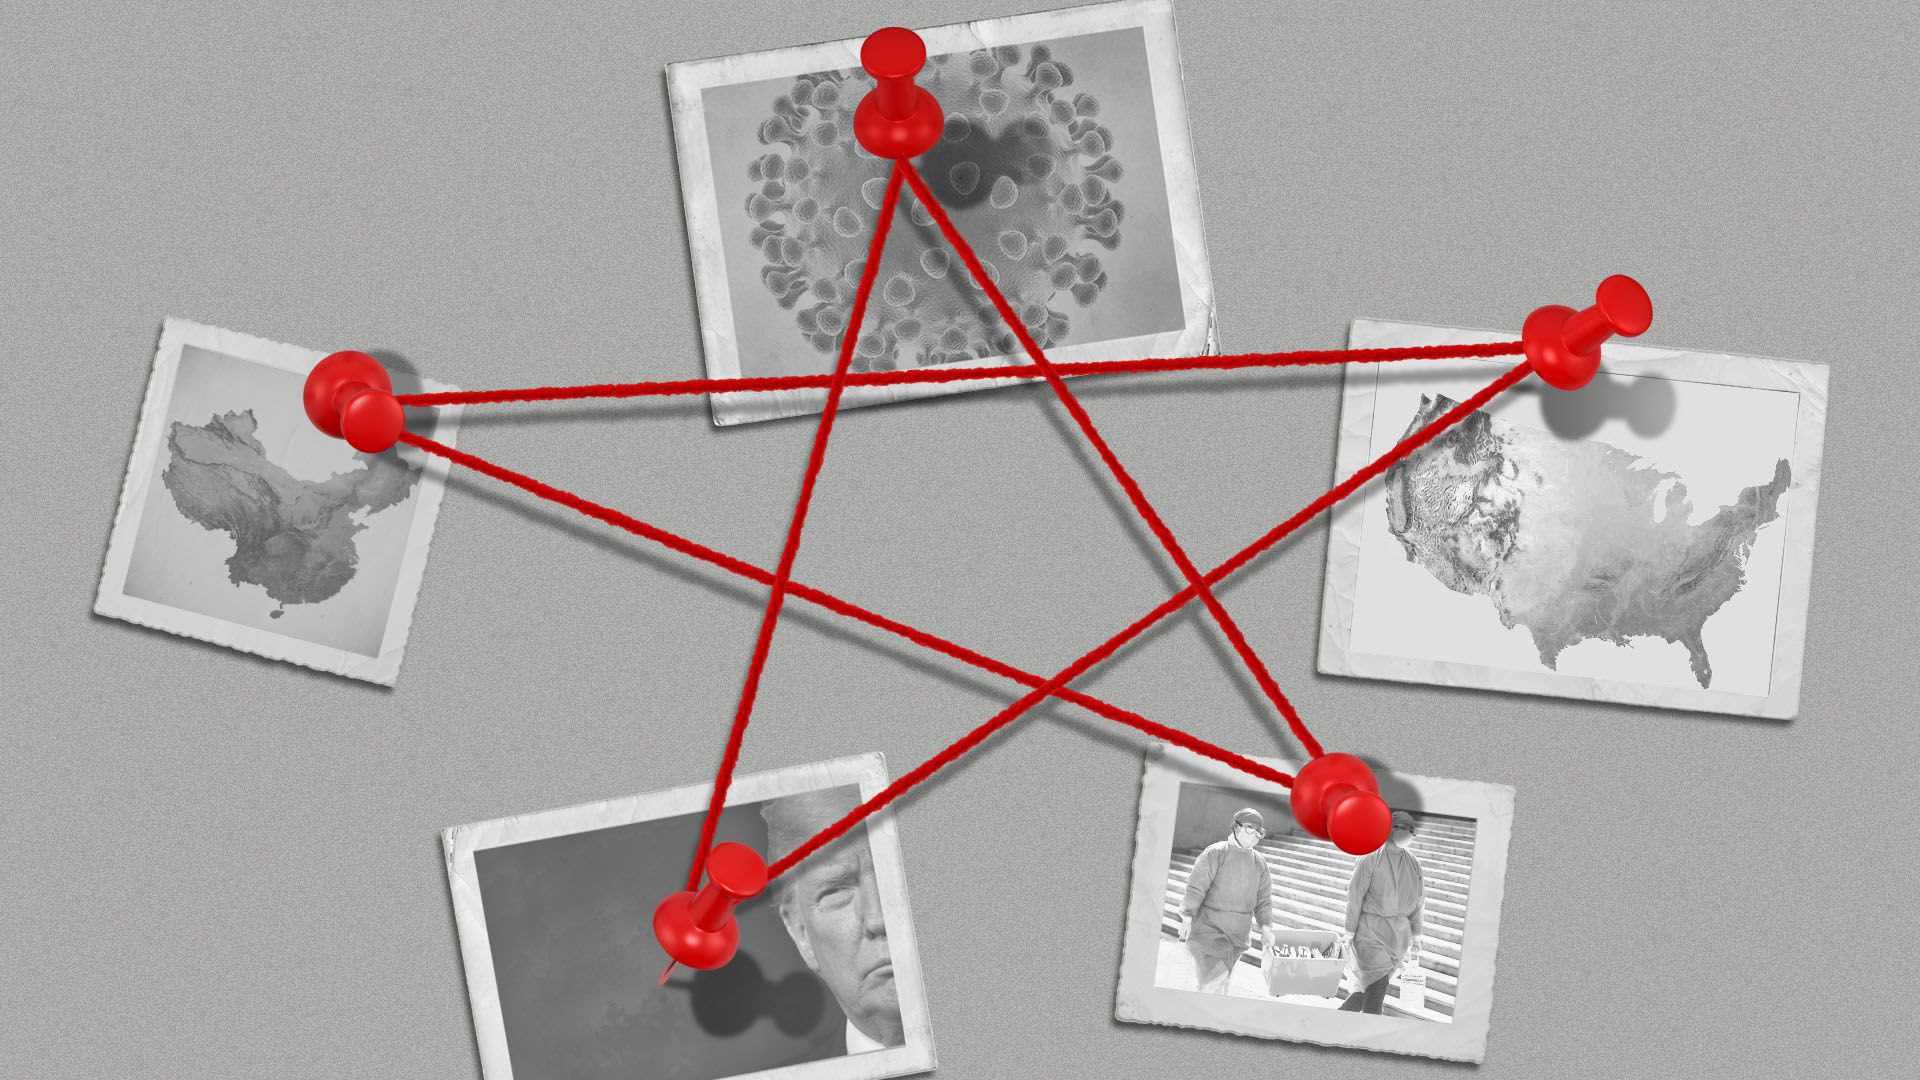 Illustration of photos including a virus, a map of the U.S. and China, President Trump, and healthcare workers in Wuhan, tacked with string in the shape of a star